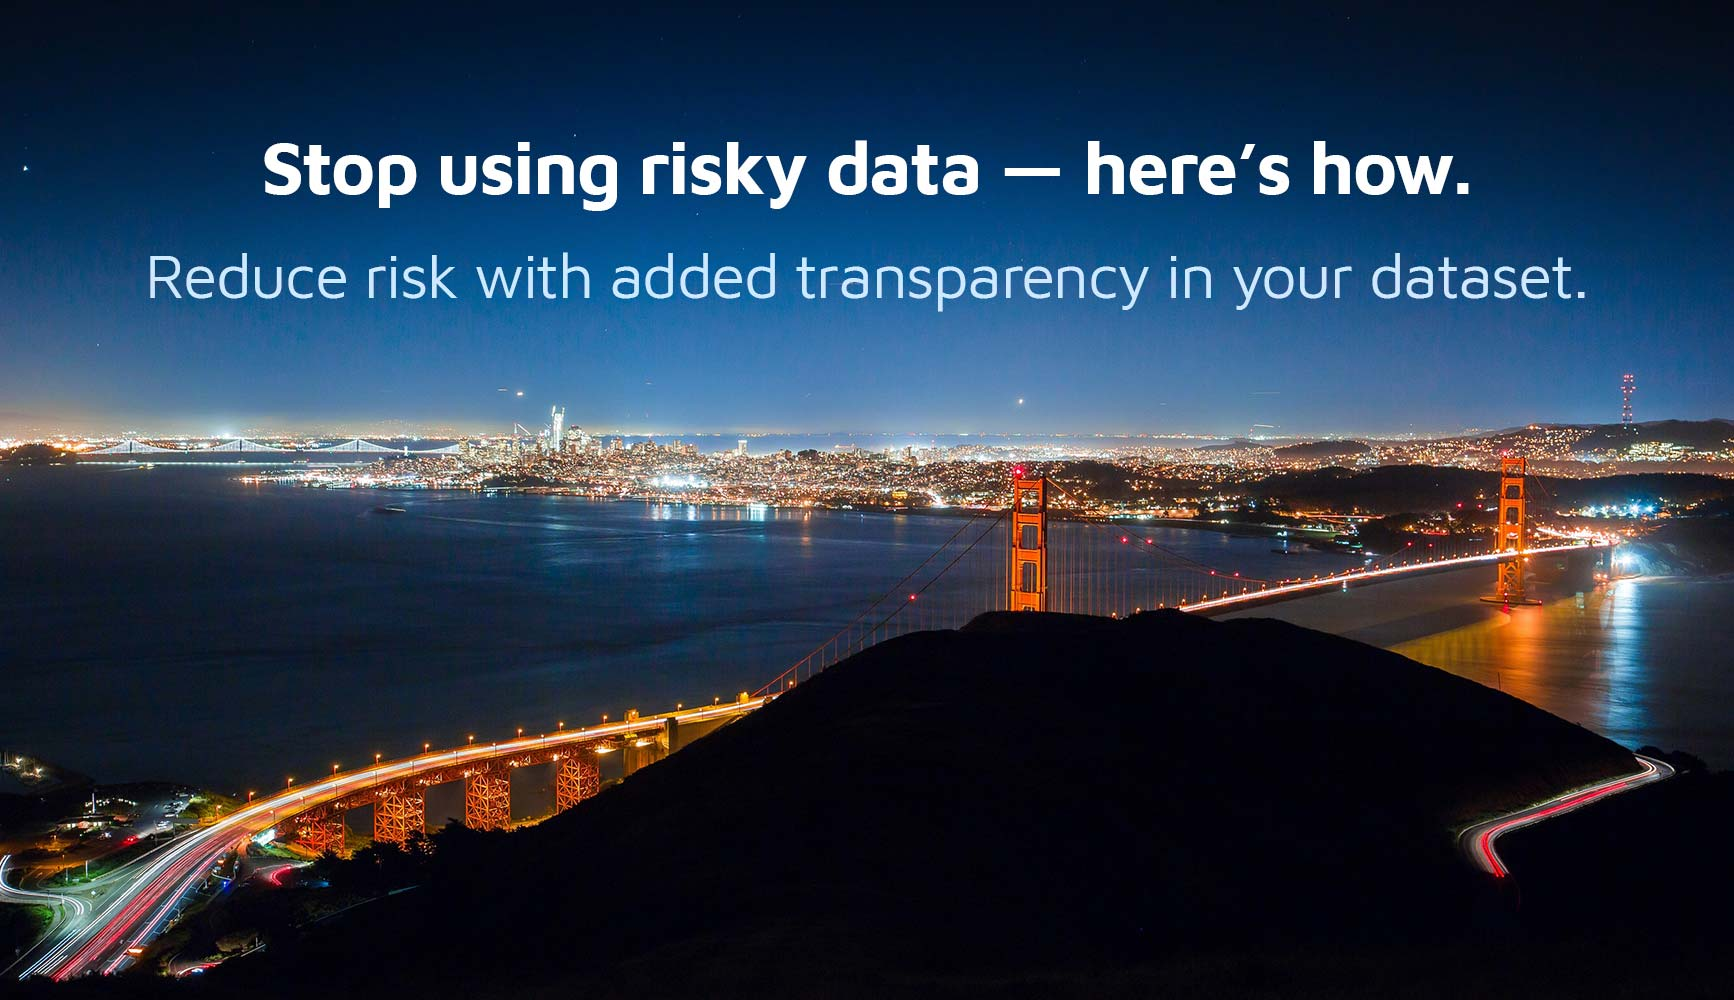 Stop using risky data — here's how.